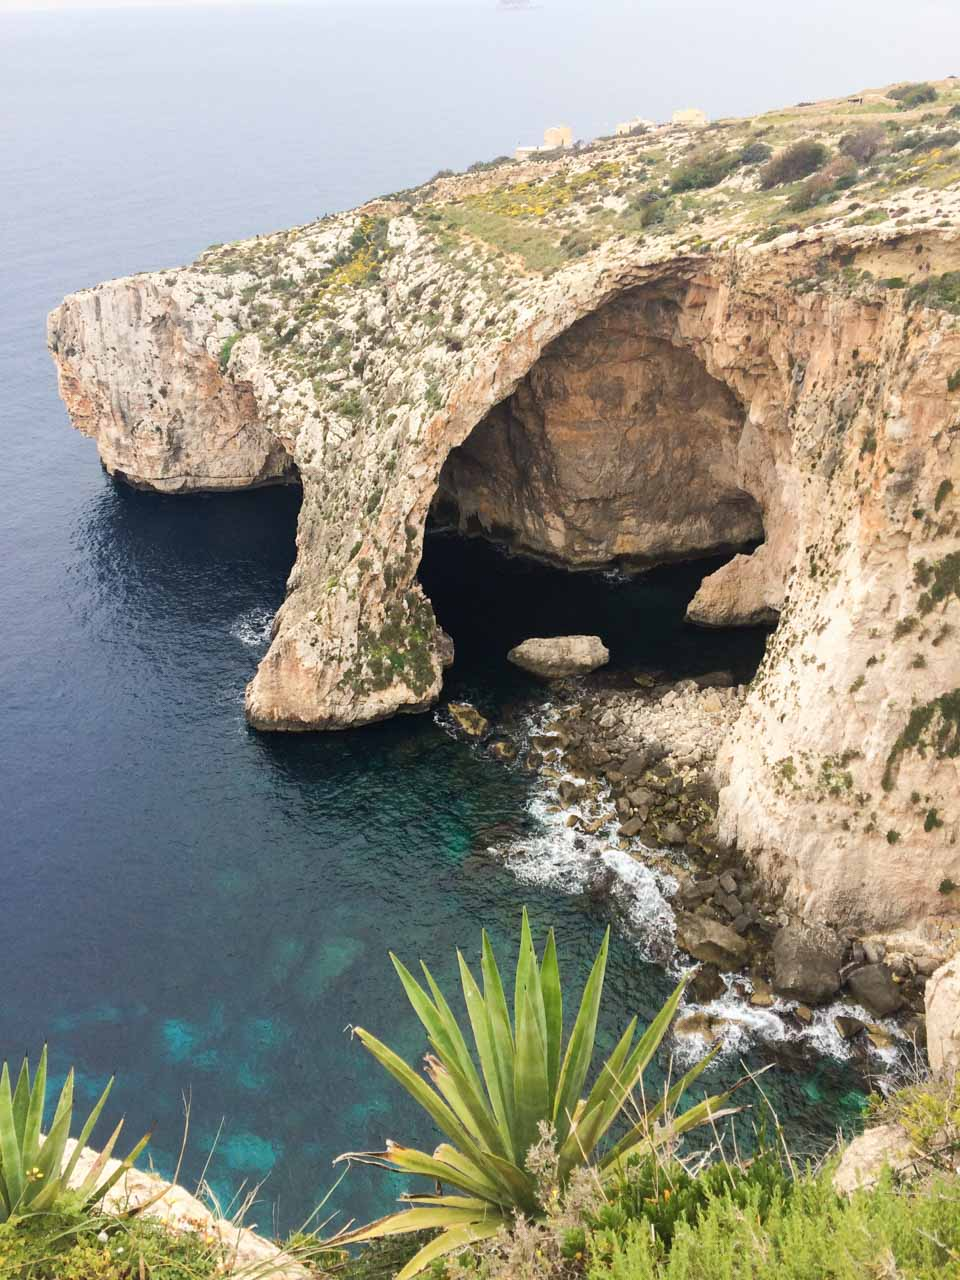 Arch of the Blue Grotto in Malta seen from above